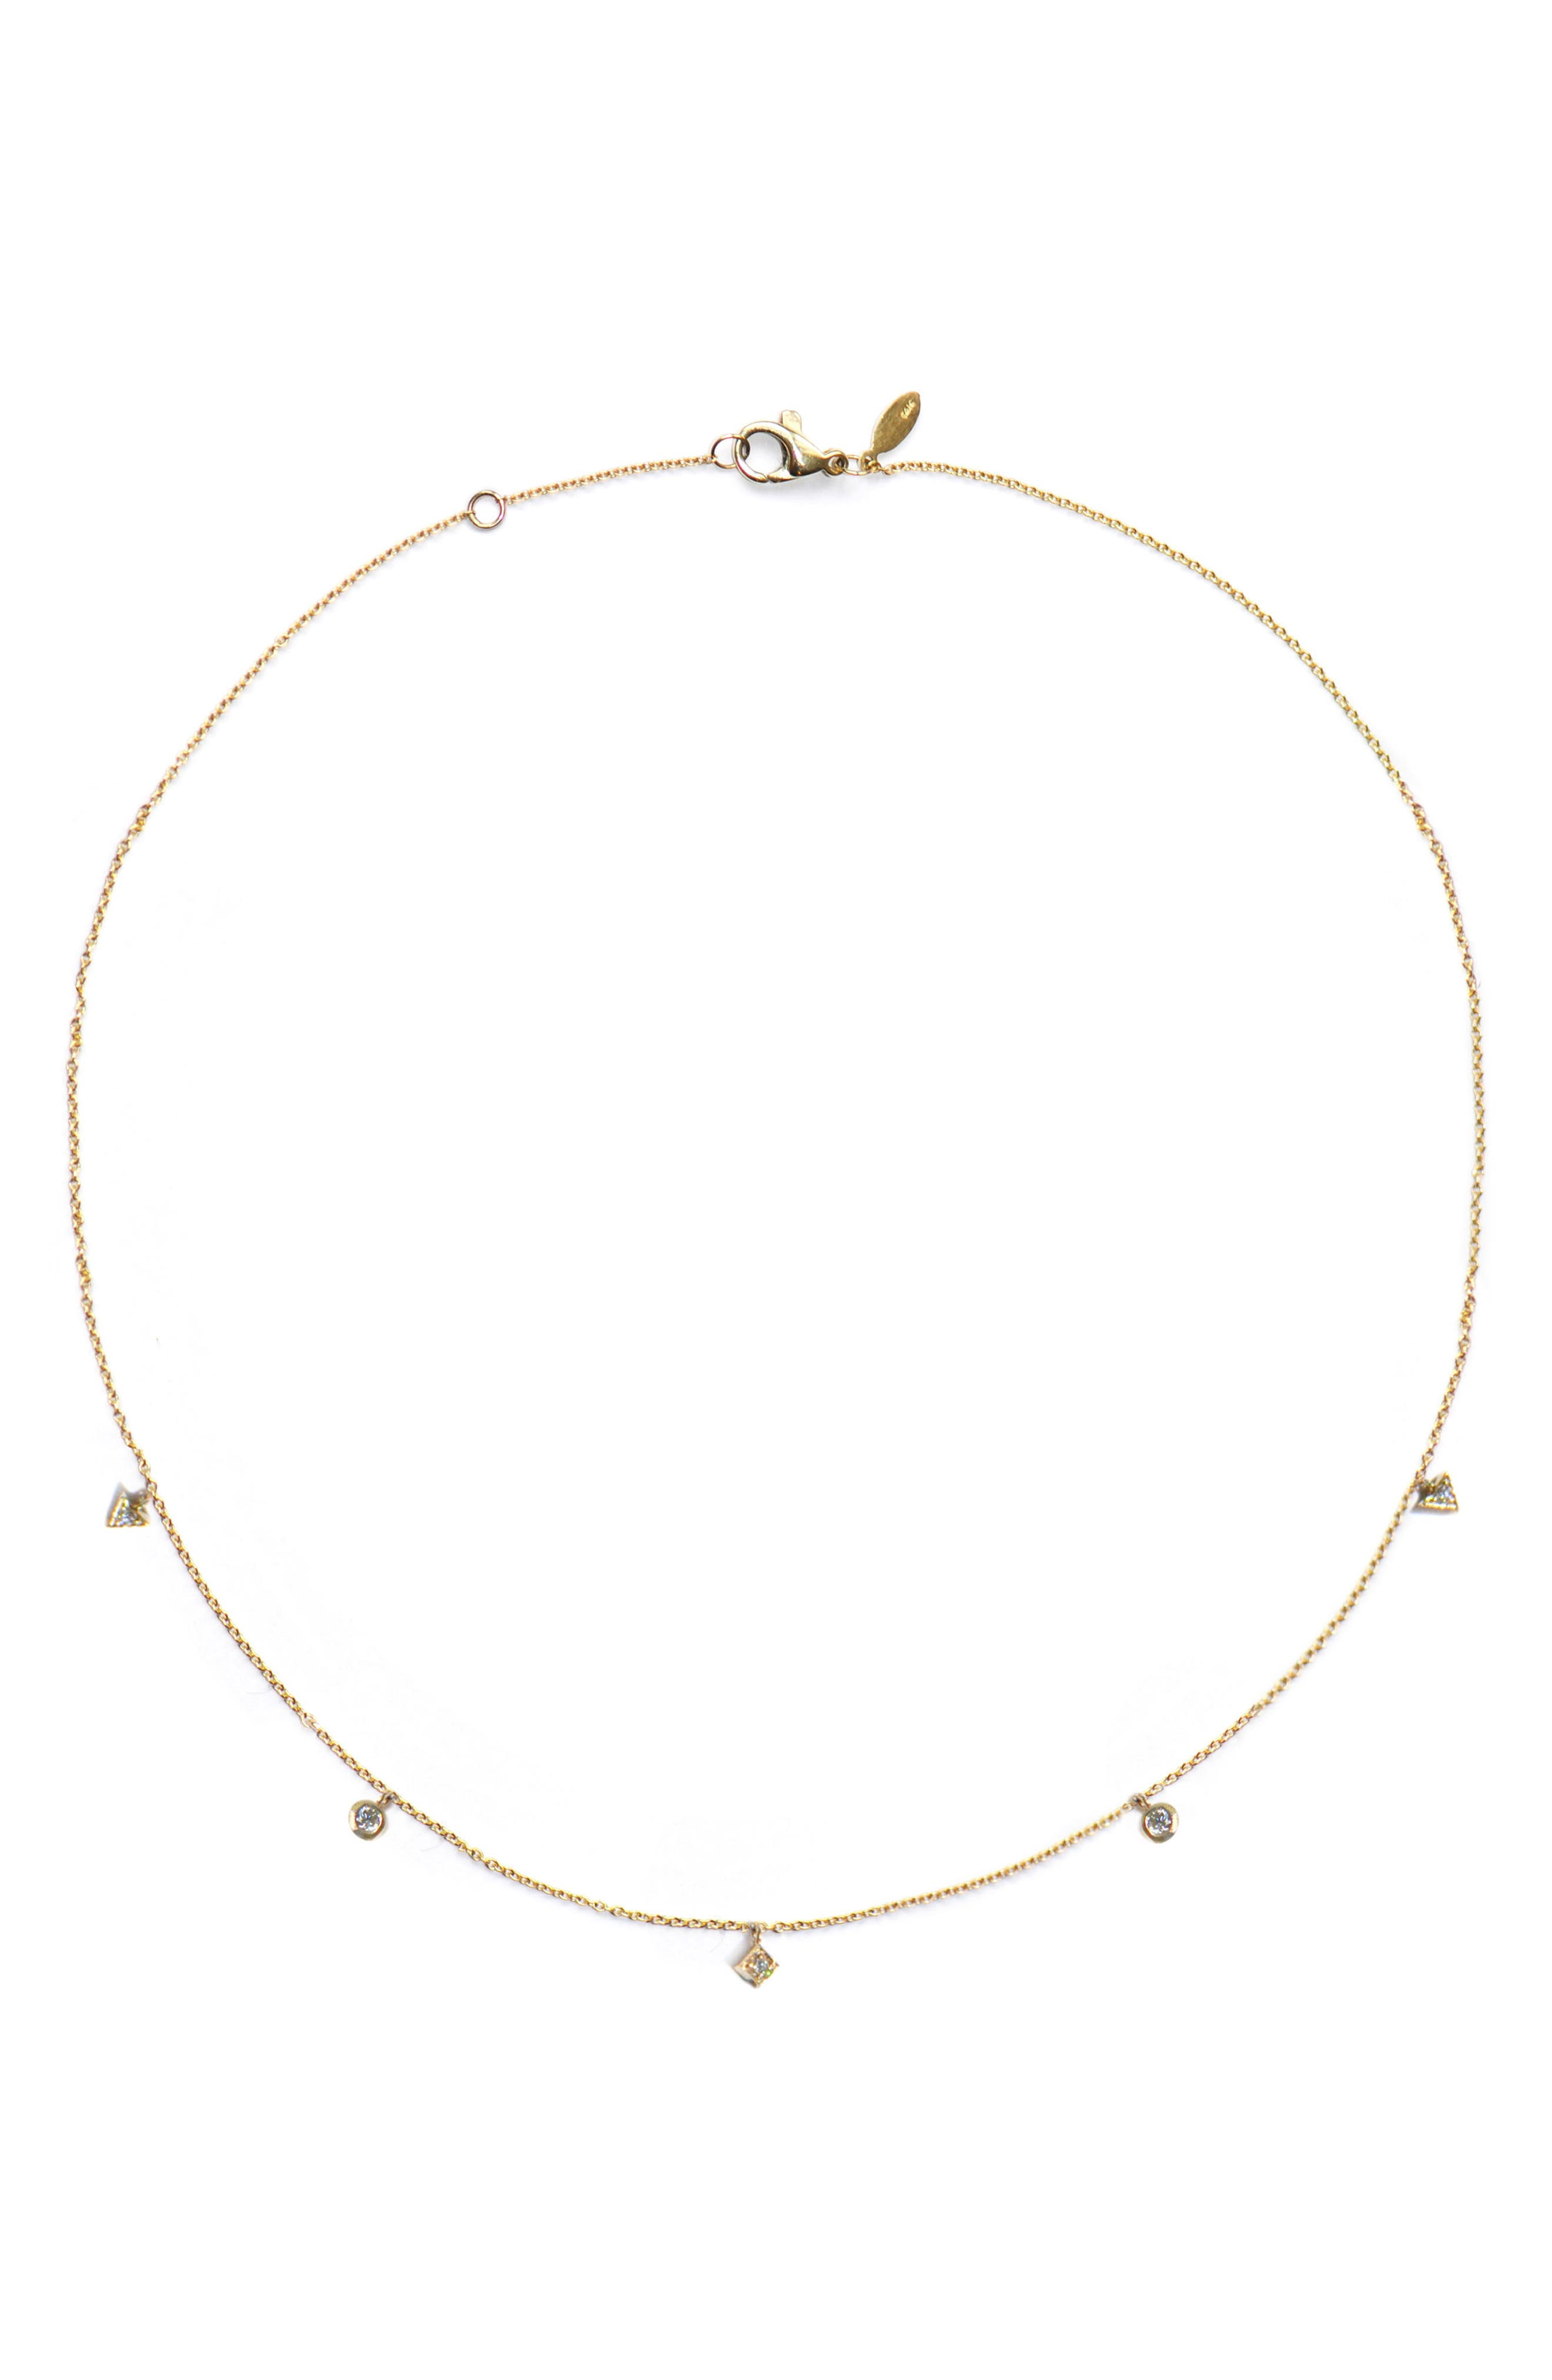 Cleo Dangling Shapes Necklace,                         Main,                         color, Gold